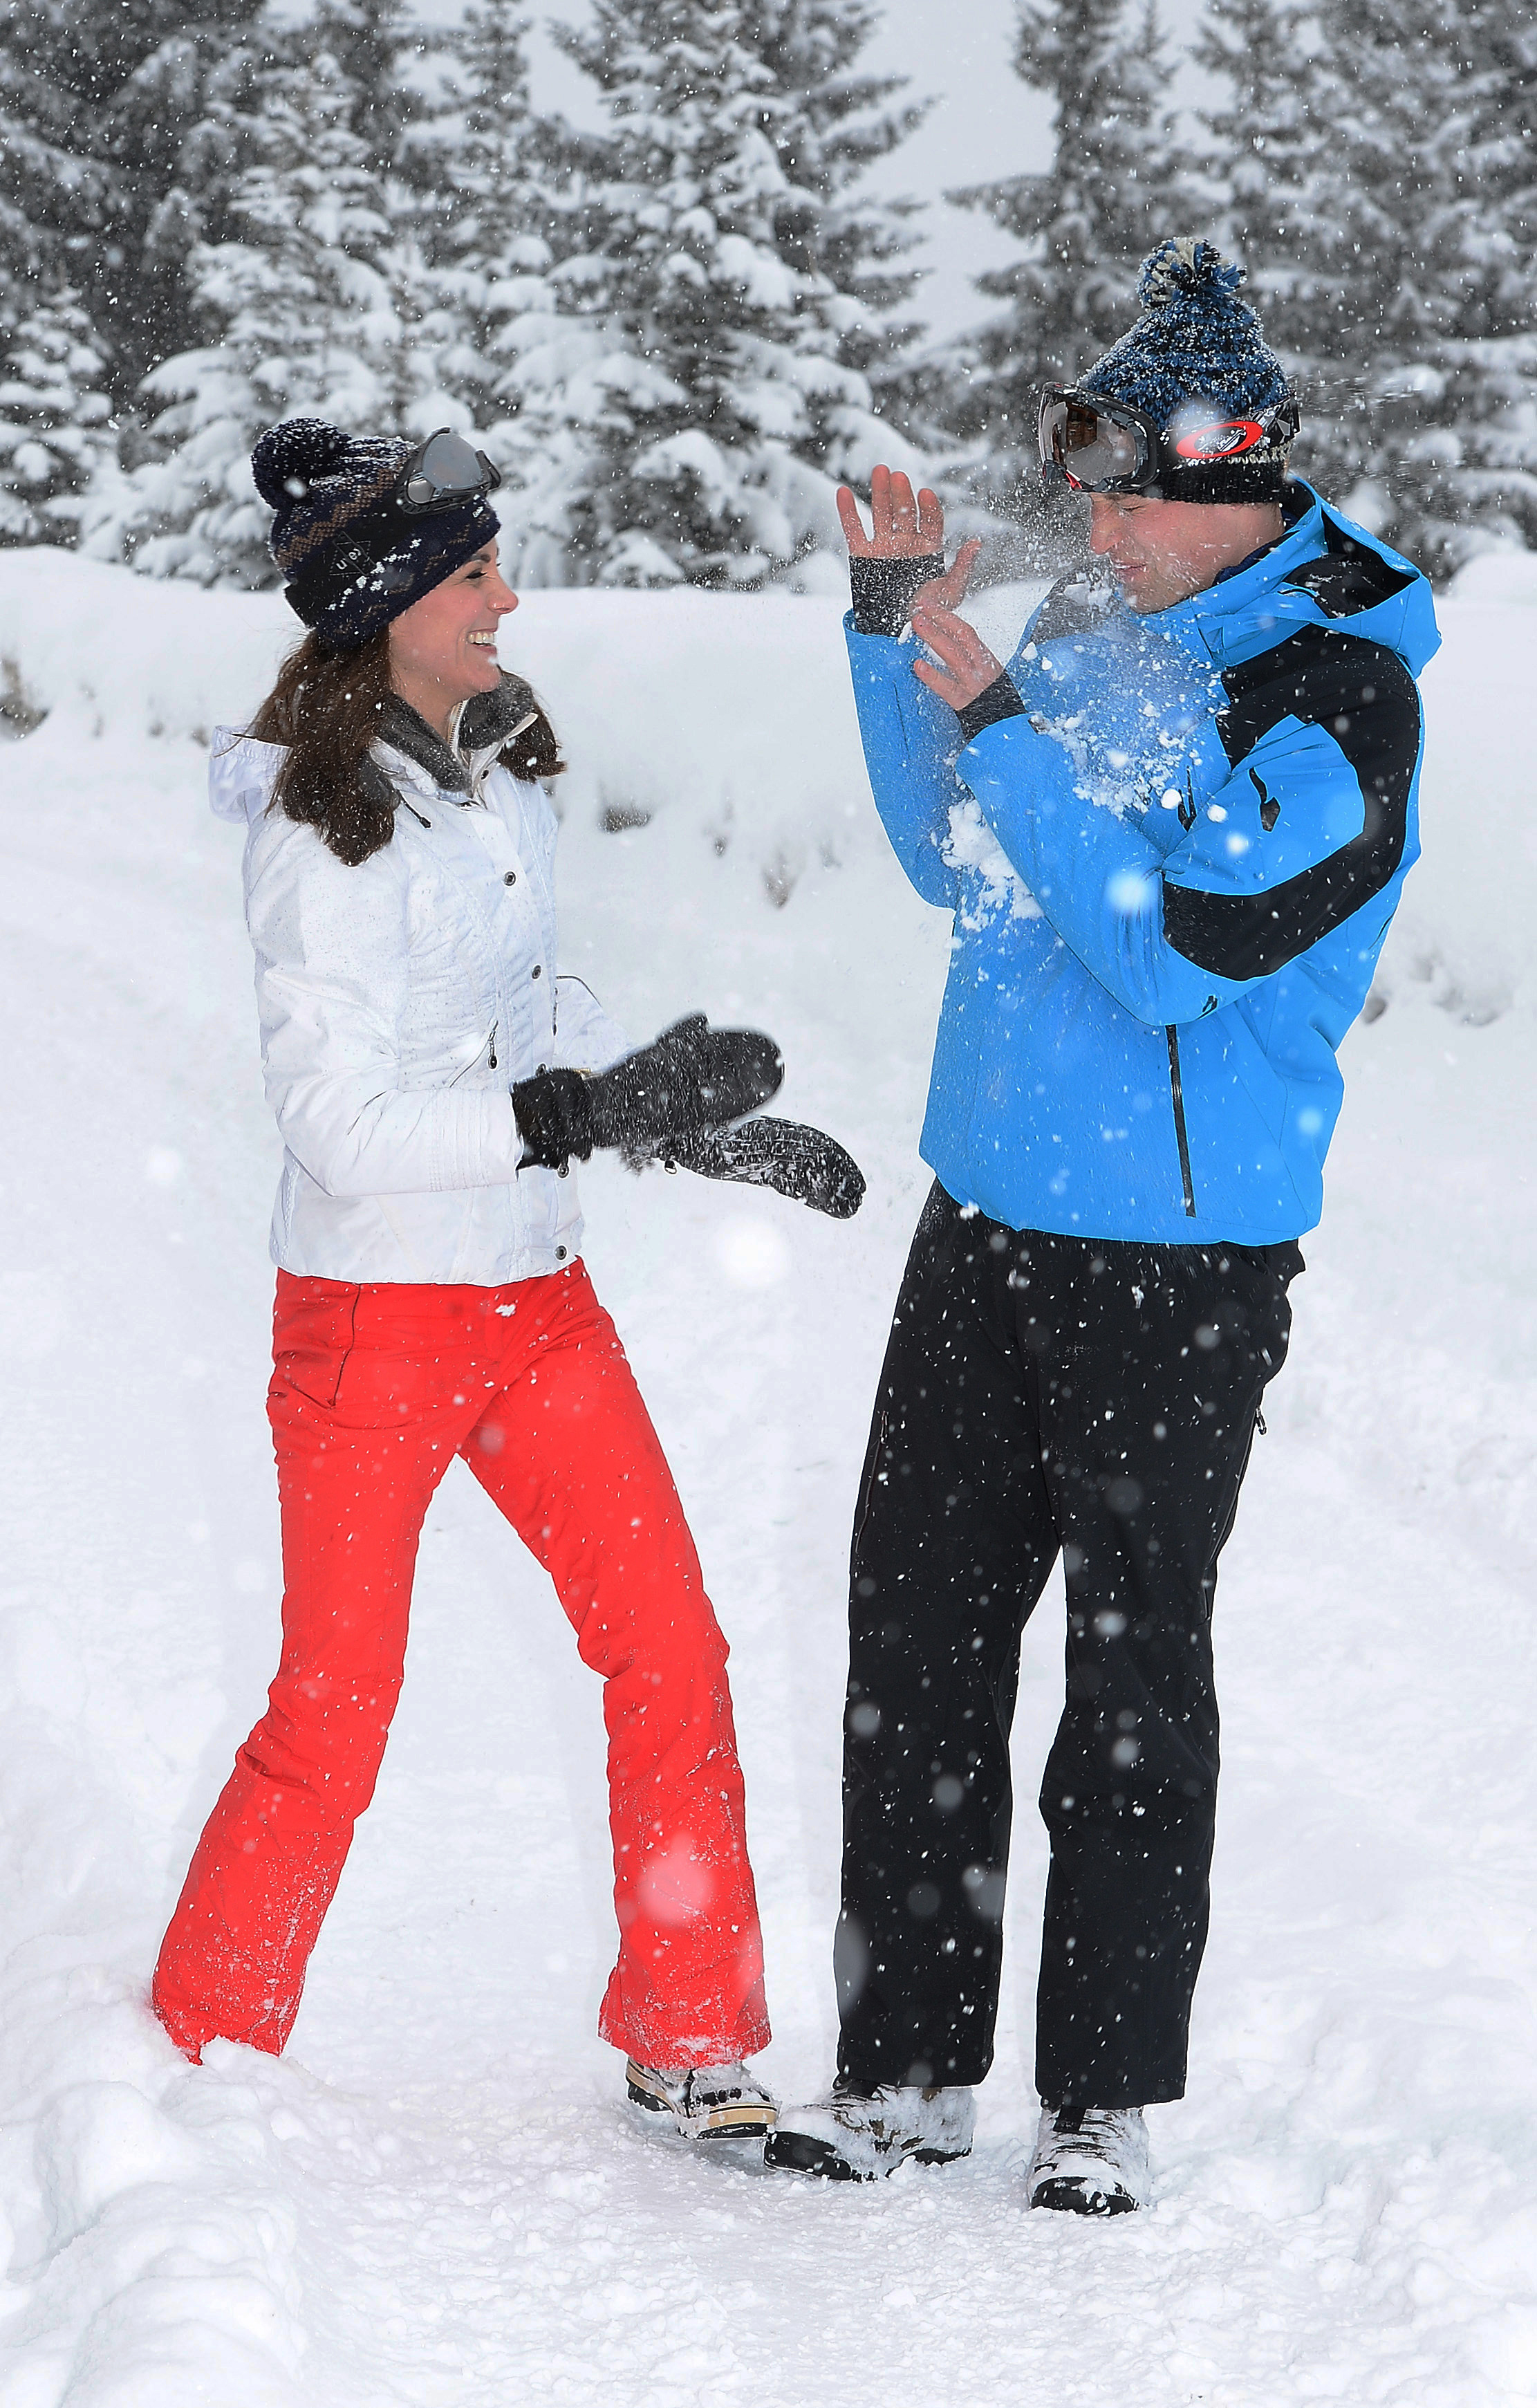 Britain's Catherine, Duchess of Cambridge and Prince William, Duke of Cambridge, have a snowball fight while skiing in the French Alps on March 3, 2016.